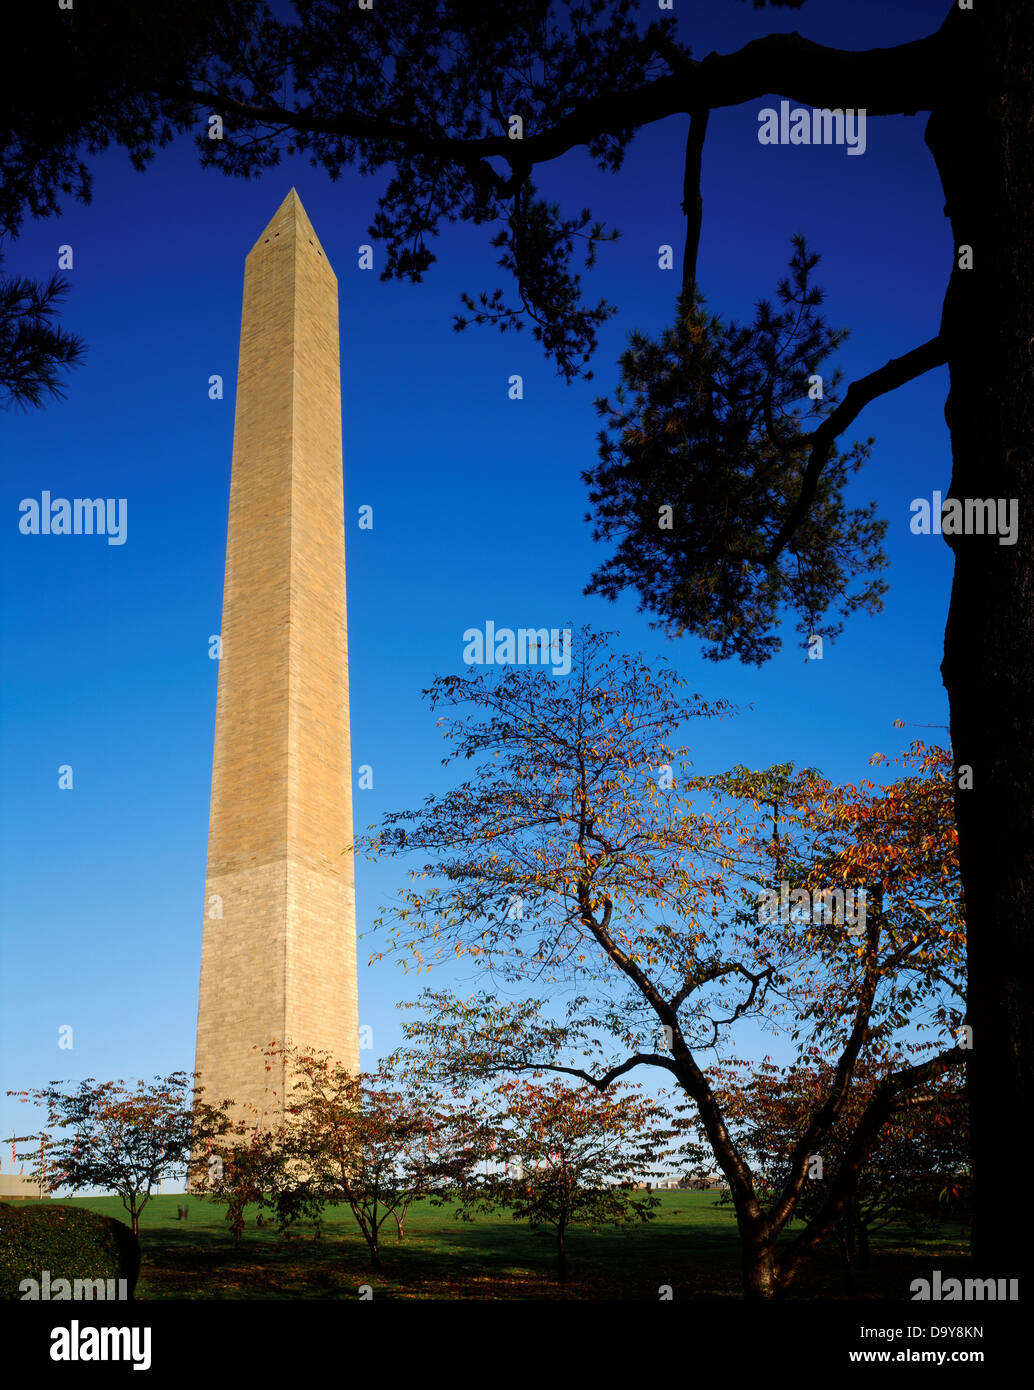 Washington marble and granite - Stock Photo Usa Washington Washington Dc National Mall Washington Monument 555 Foot Tall Marble Granite Obelisk Commemorating George